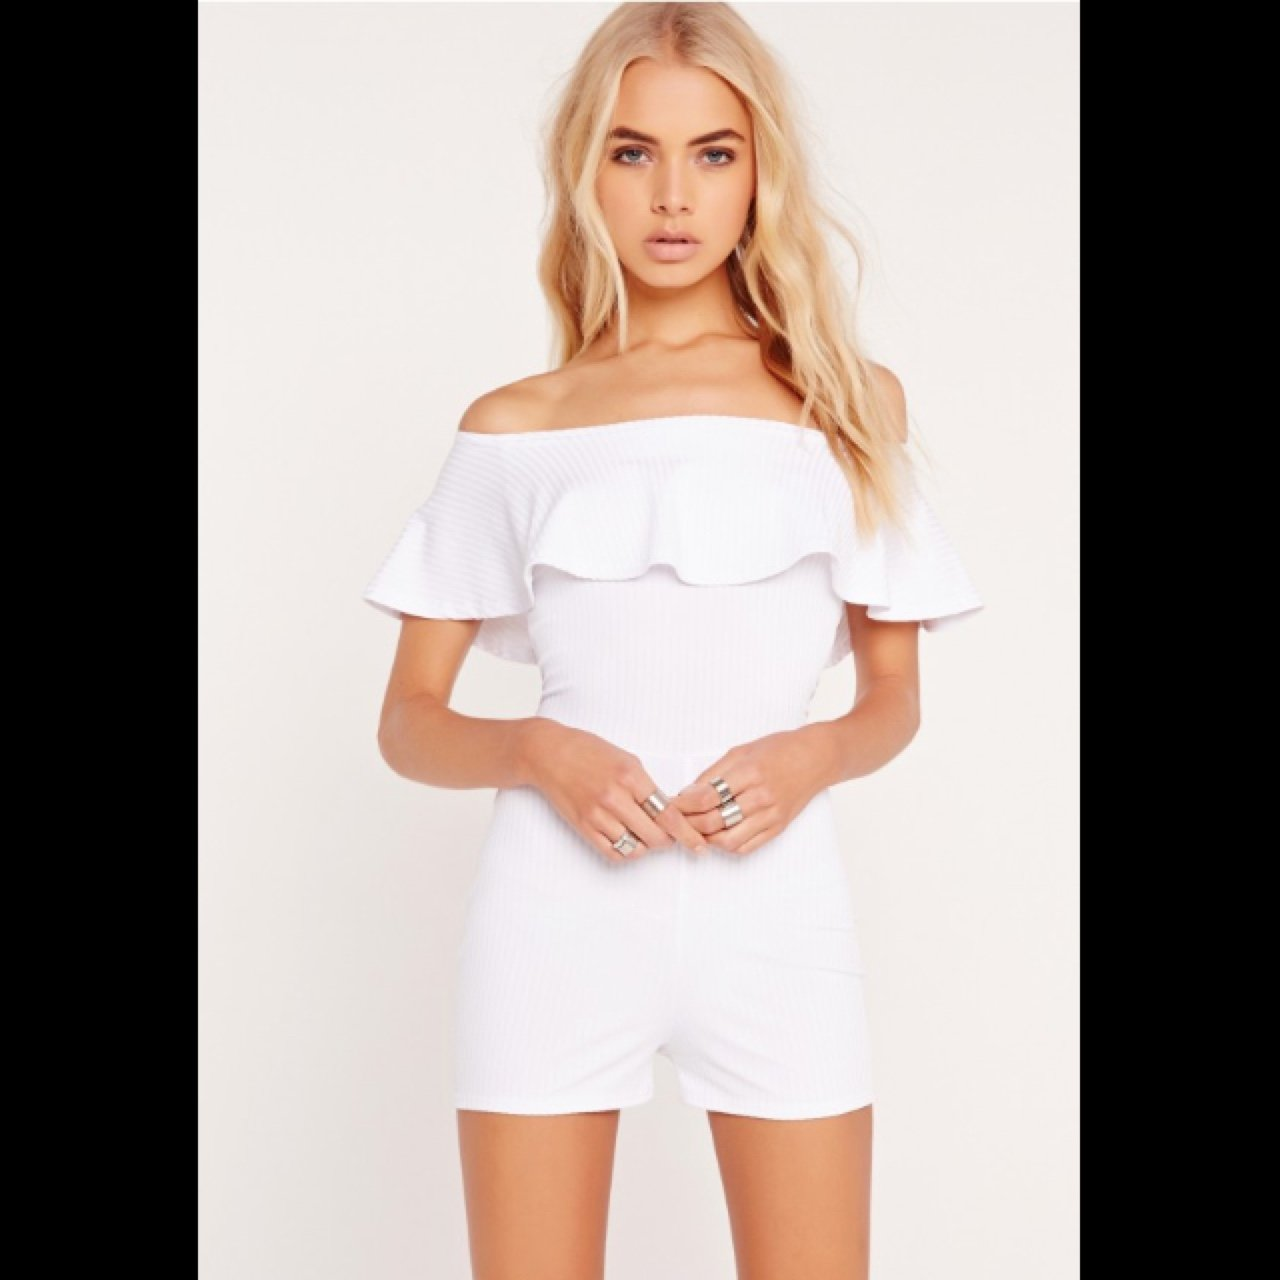 f5abbaa701e MISSGUIDED Ribbed Frill Bardot Playsuit in White. Size 8  - - Depop